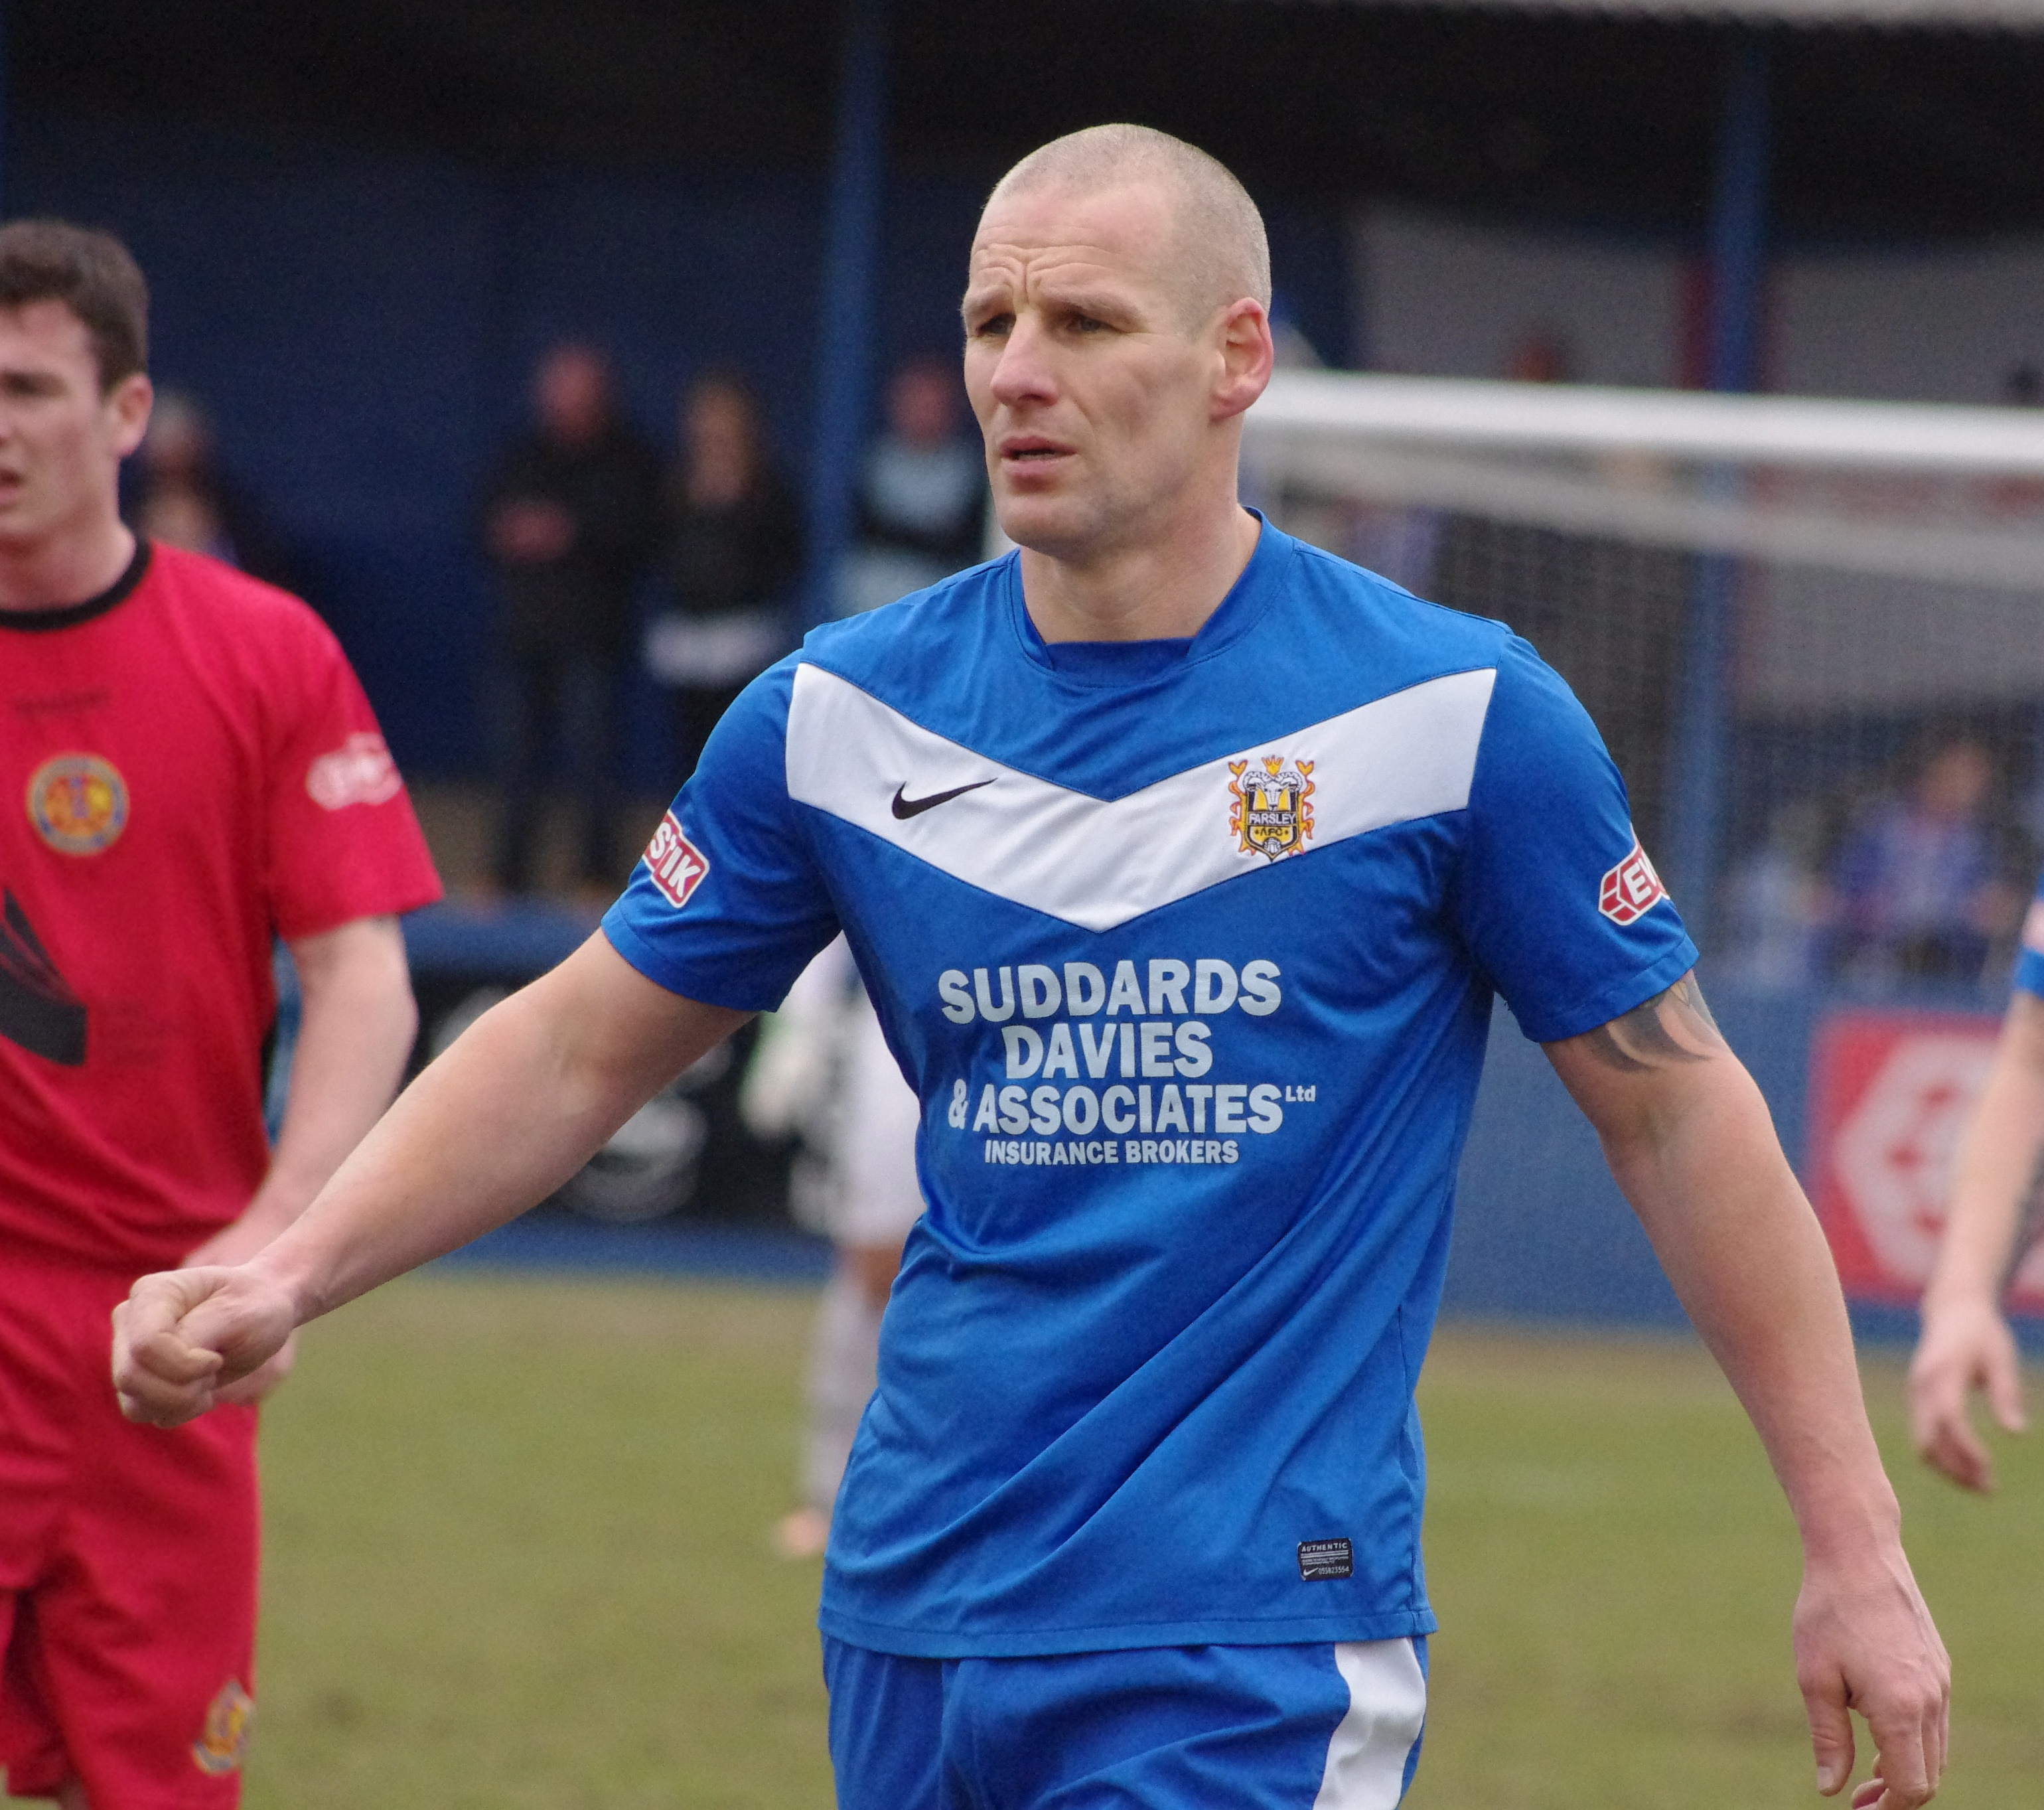 Simeon Bambrook had a fantastic career according to former Garforth Town manager Dave Parker, the man who discovered him